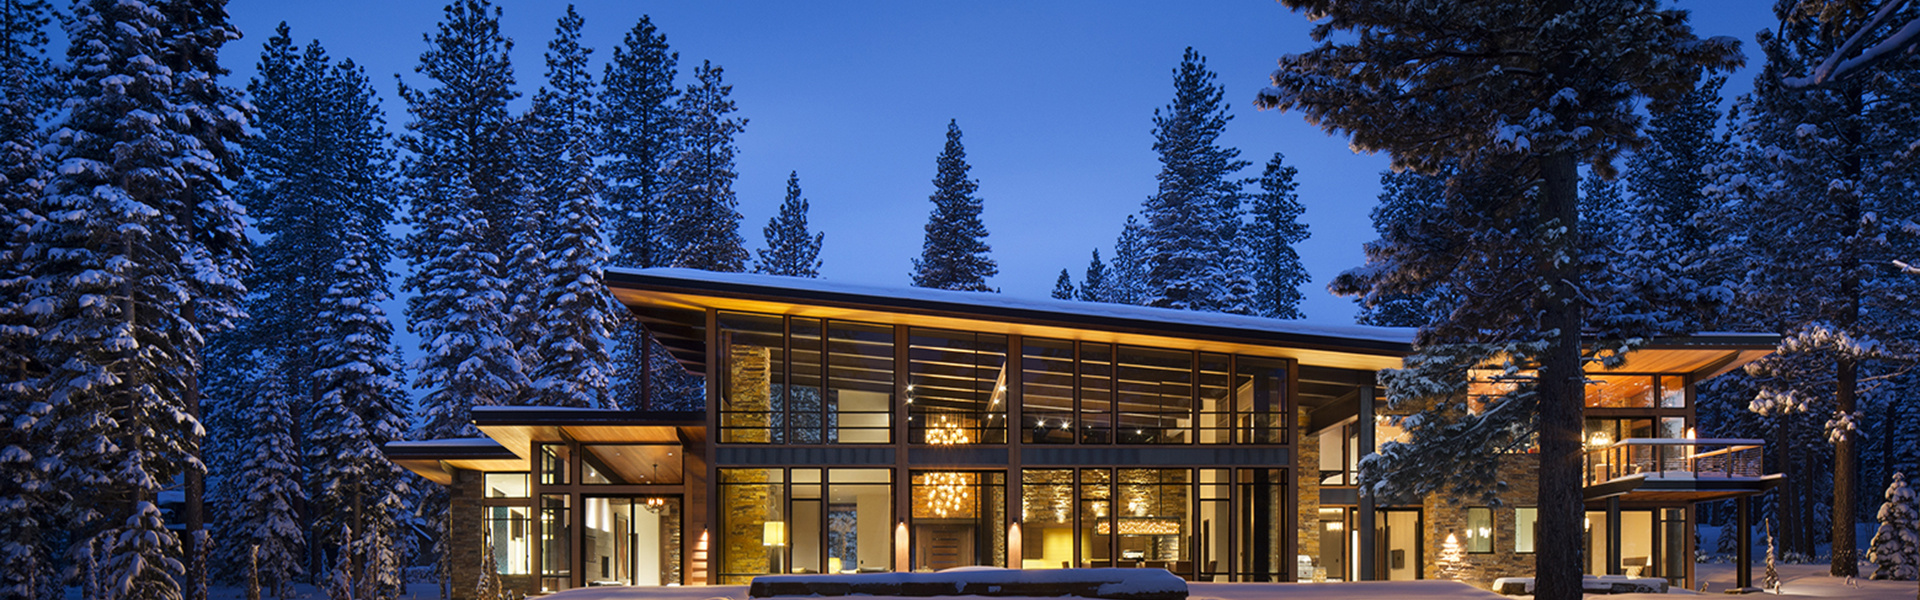 Smart home installation by RAC Advanced Control for Truckee